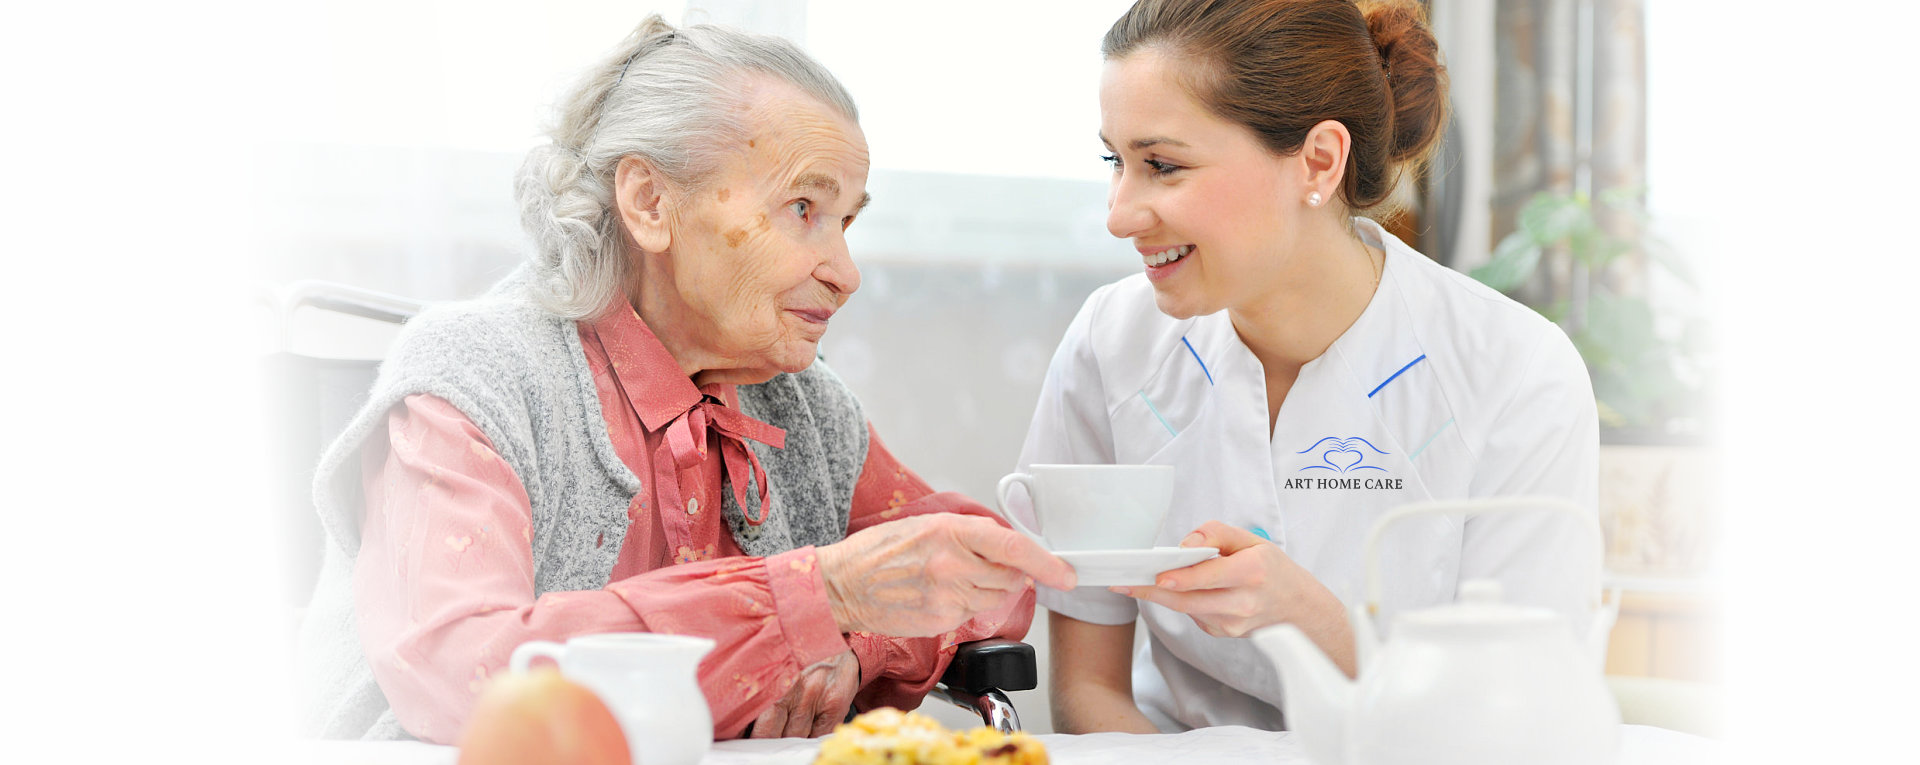 nurse serving soup to an elderly woman